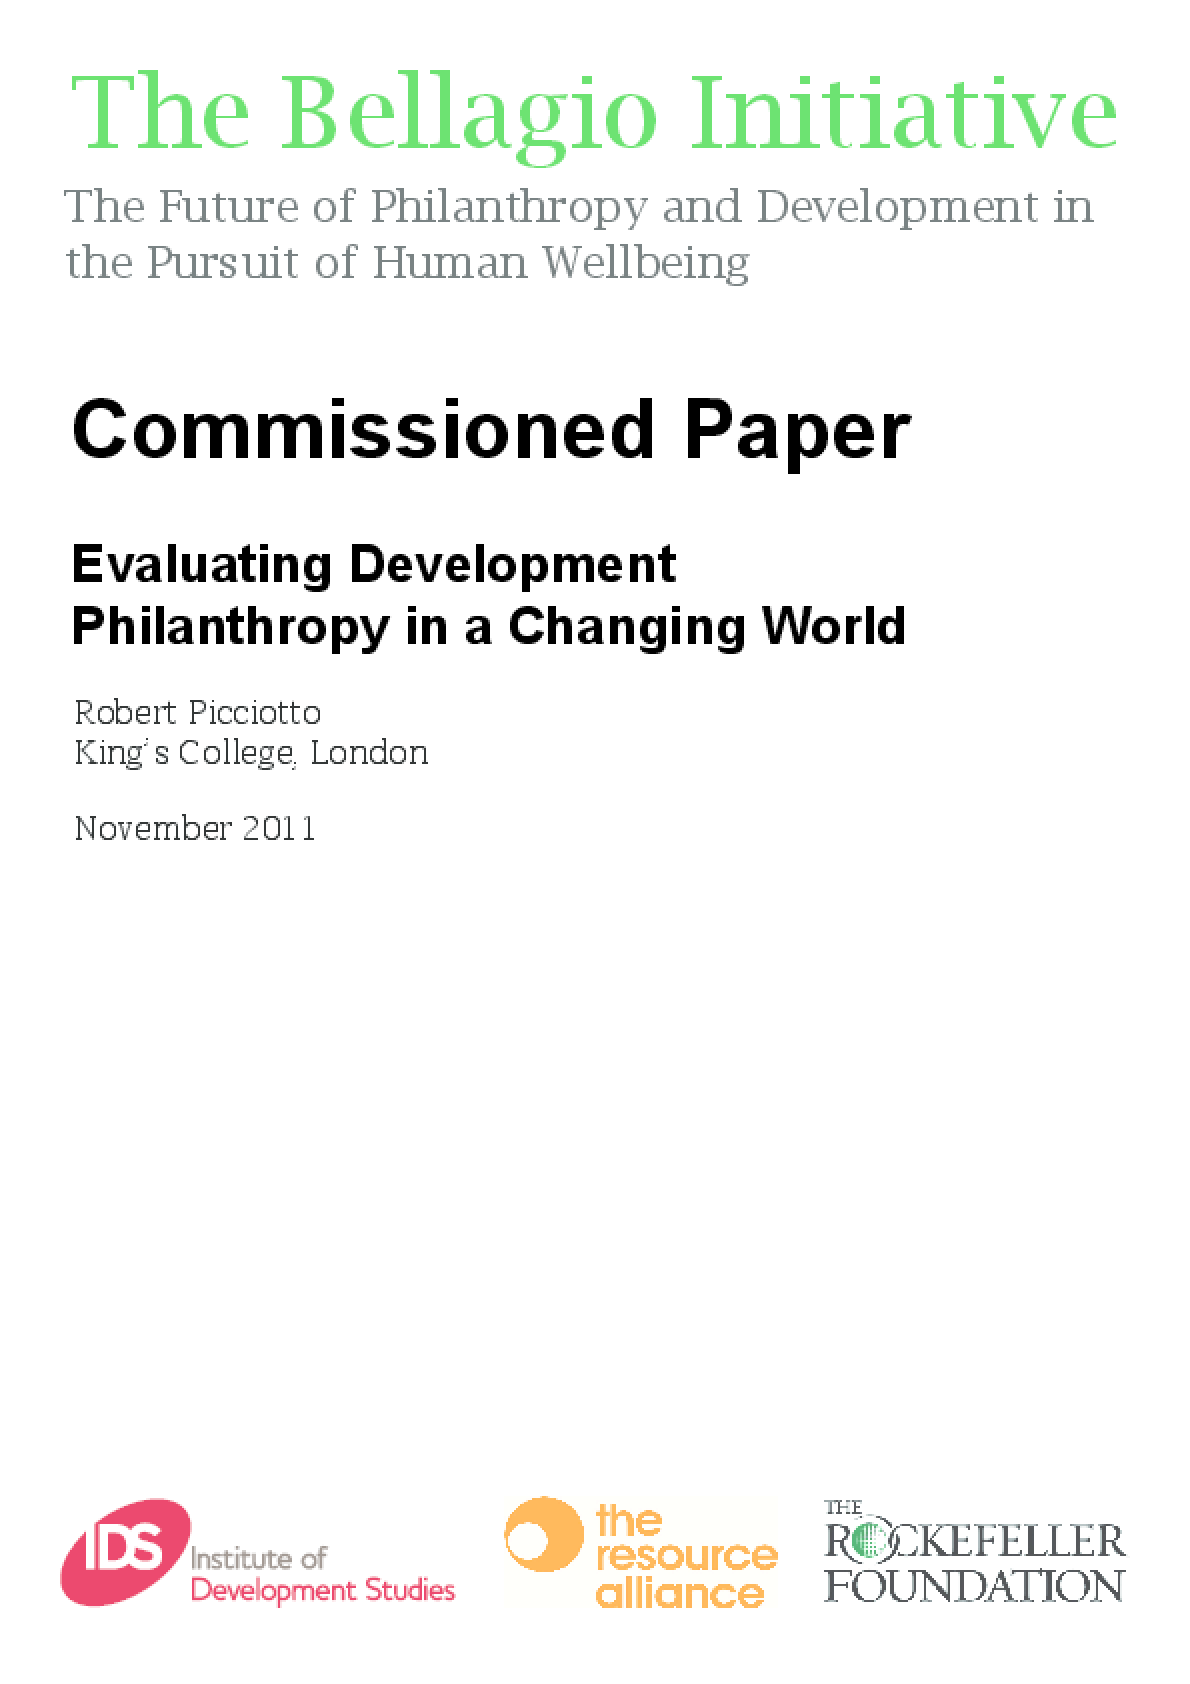 Evaluating Development Philanthropy in a Changing World